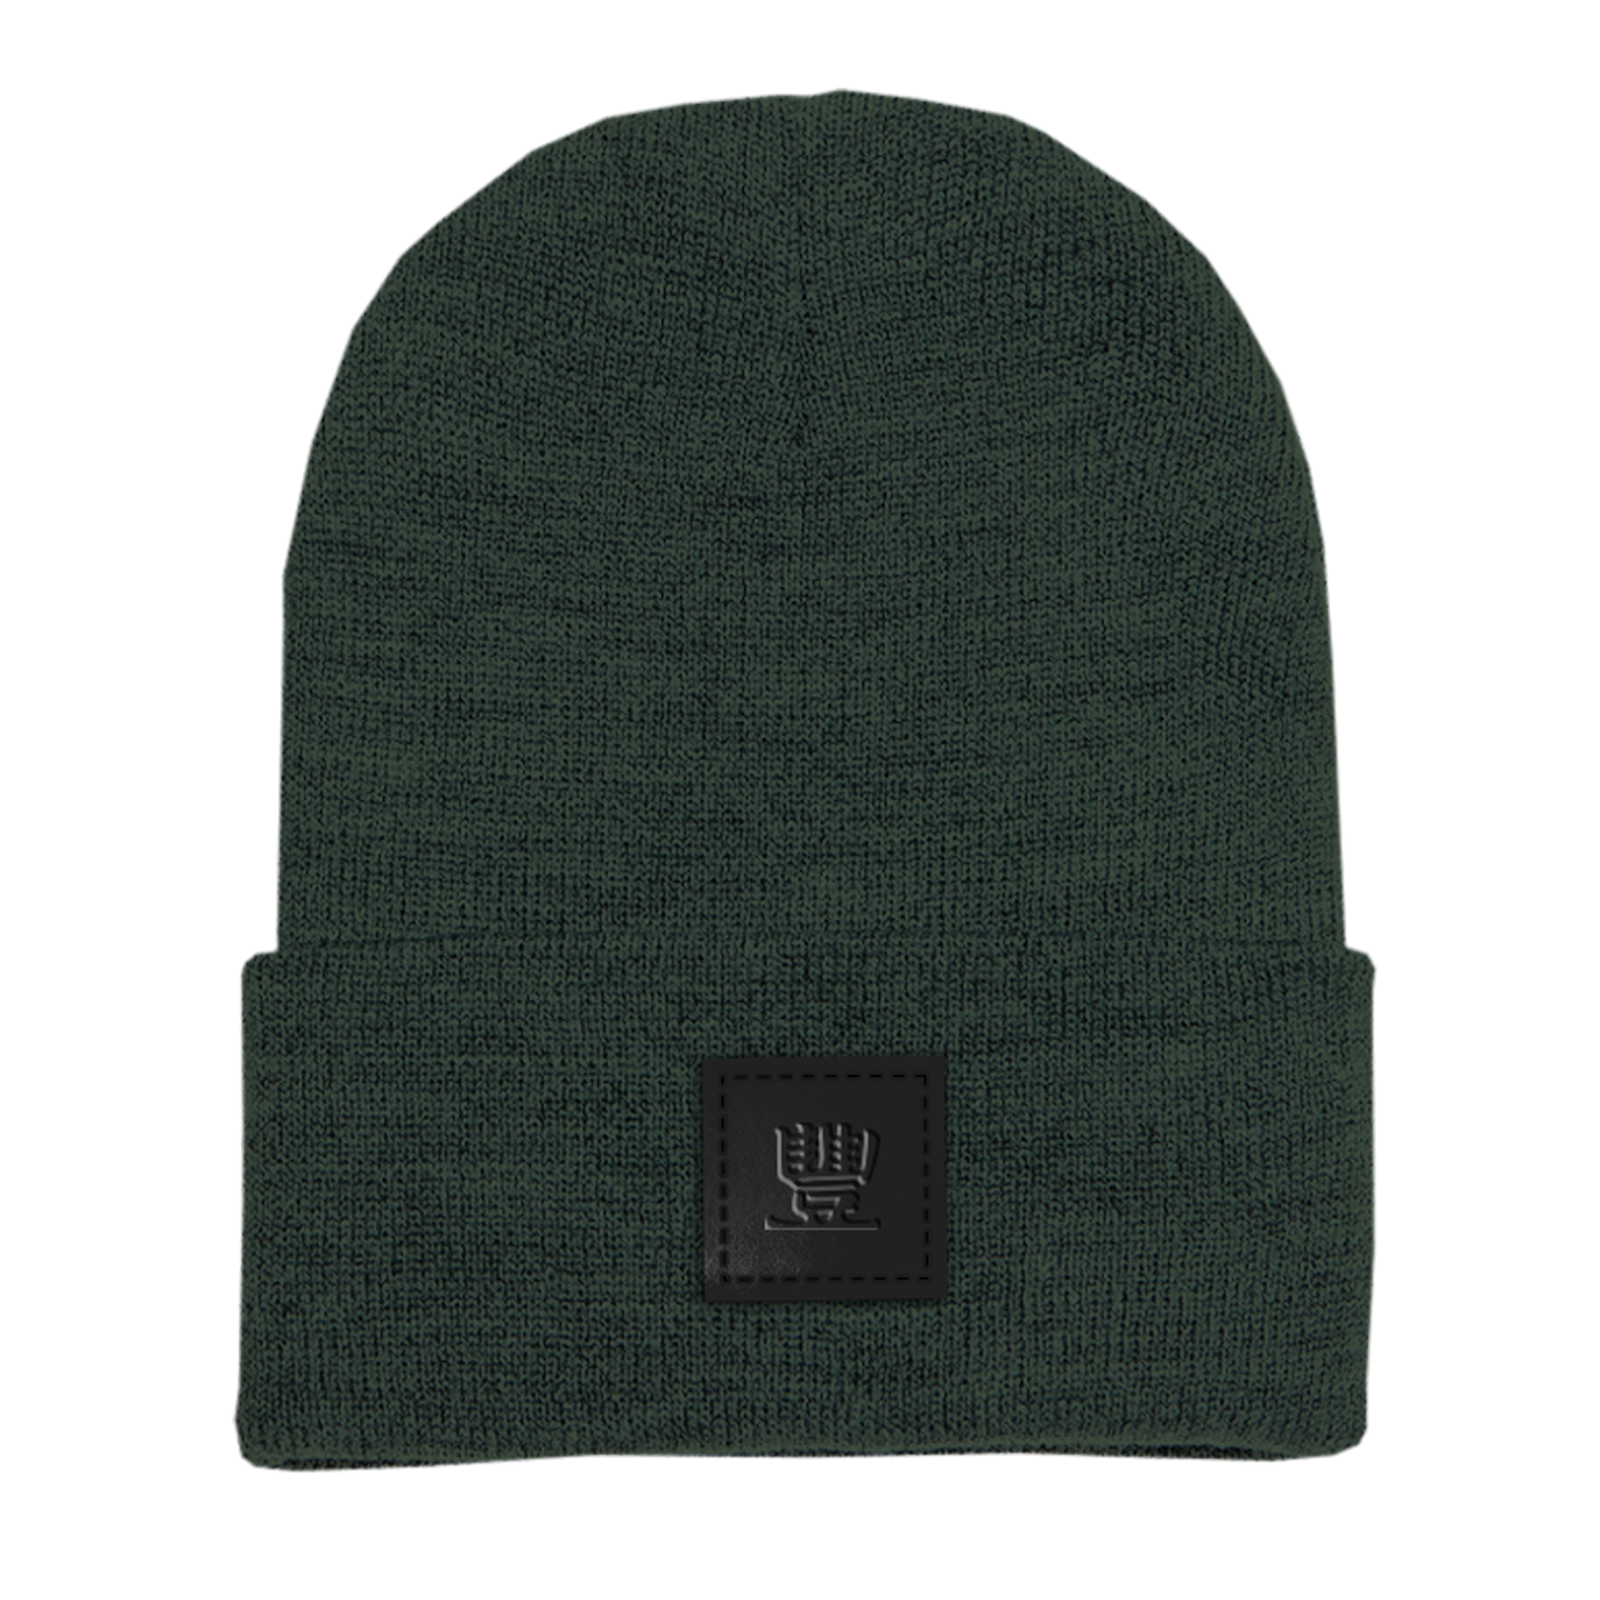 JMT Embossed Leather Patch on Athletic Green Beanie